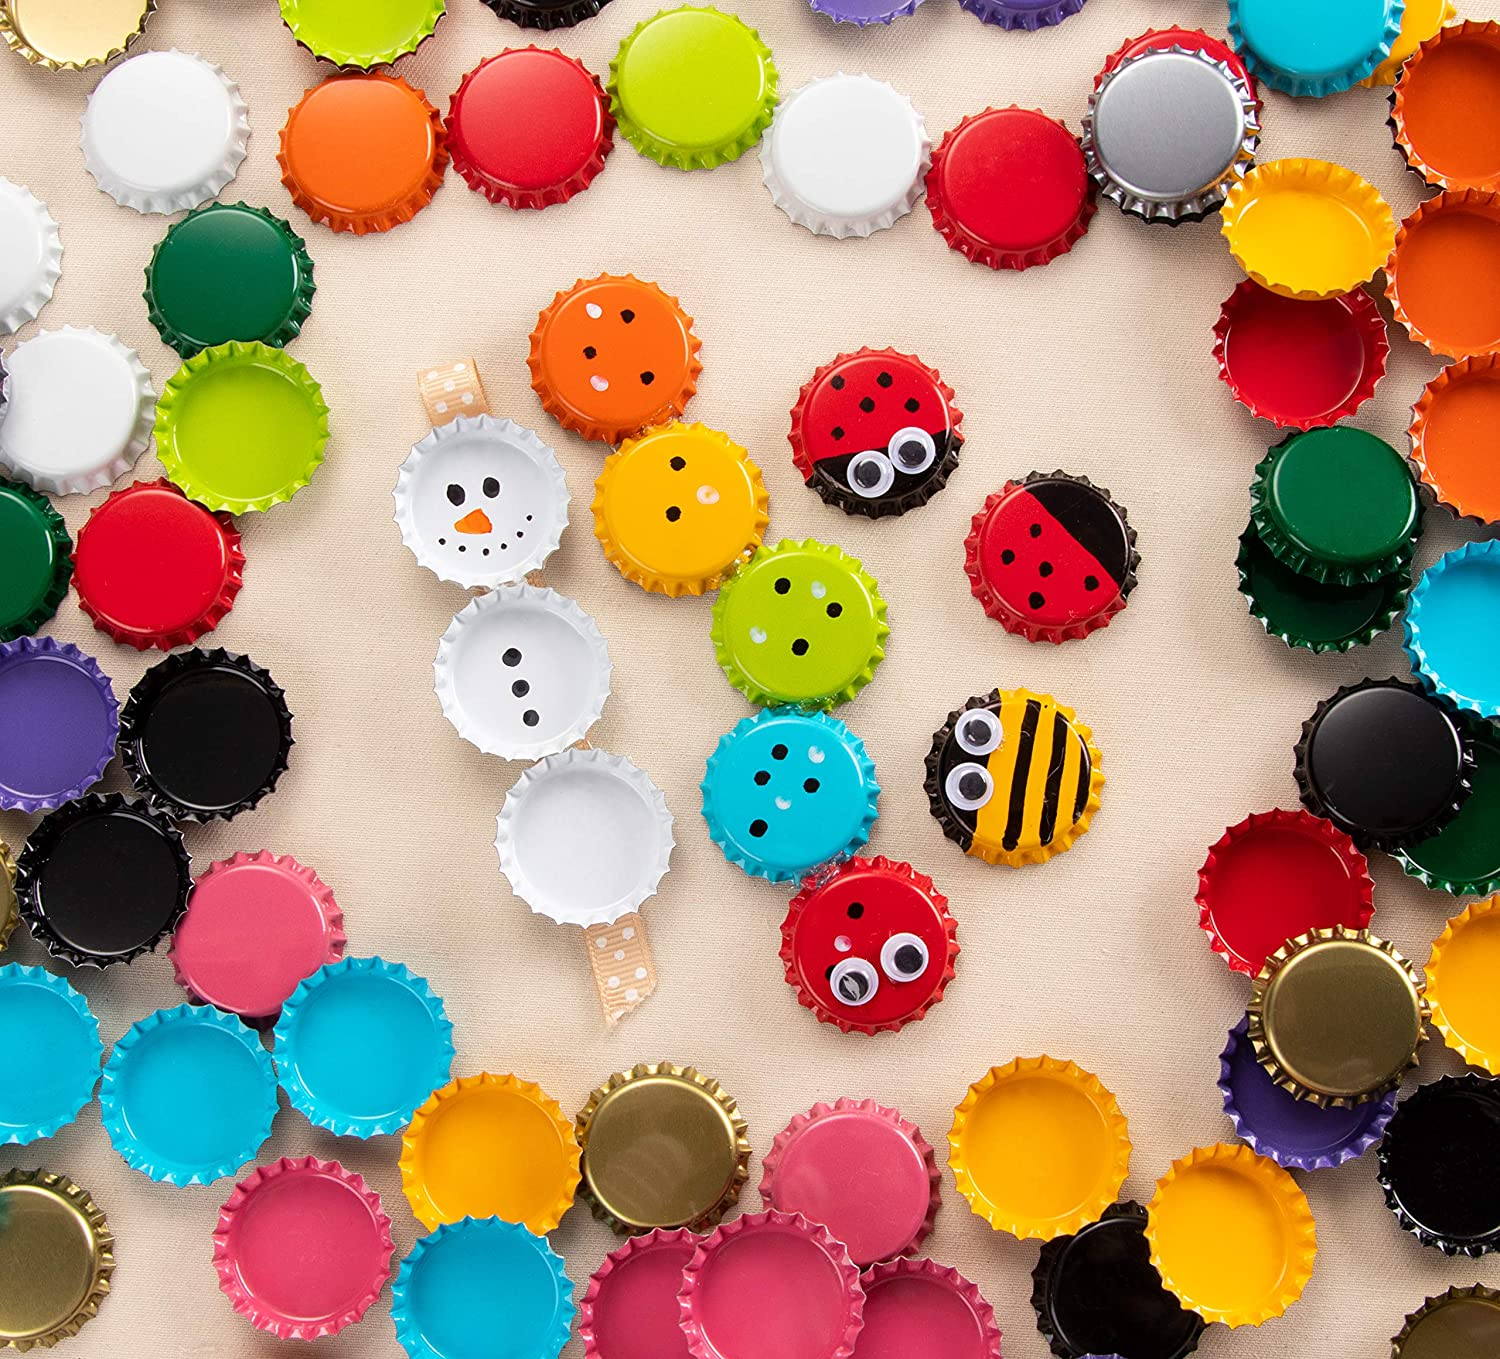 Black Hairbows Scrapbooking 1 Inch Diameter Perfect for Jewelry Making Decorative Bottle Caps Bottle Caps- 120-Pack Craft Crown Bottle Caps Pendants DIY